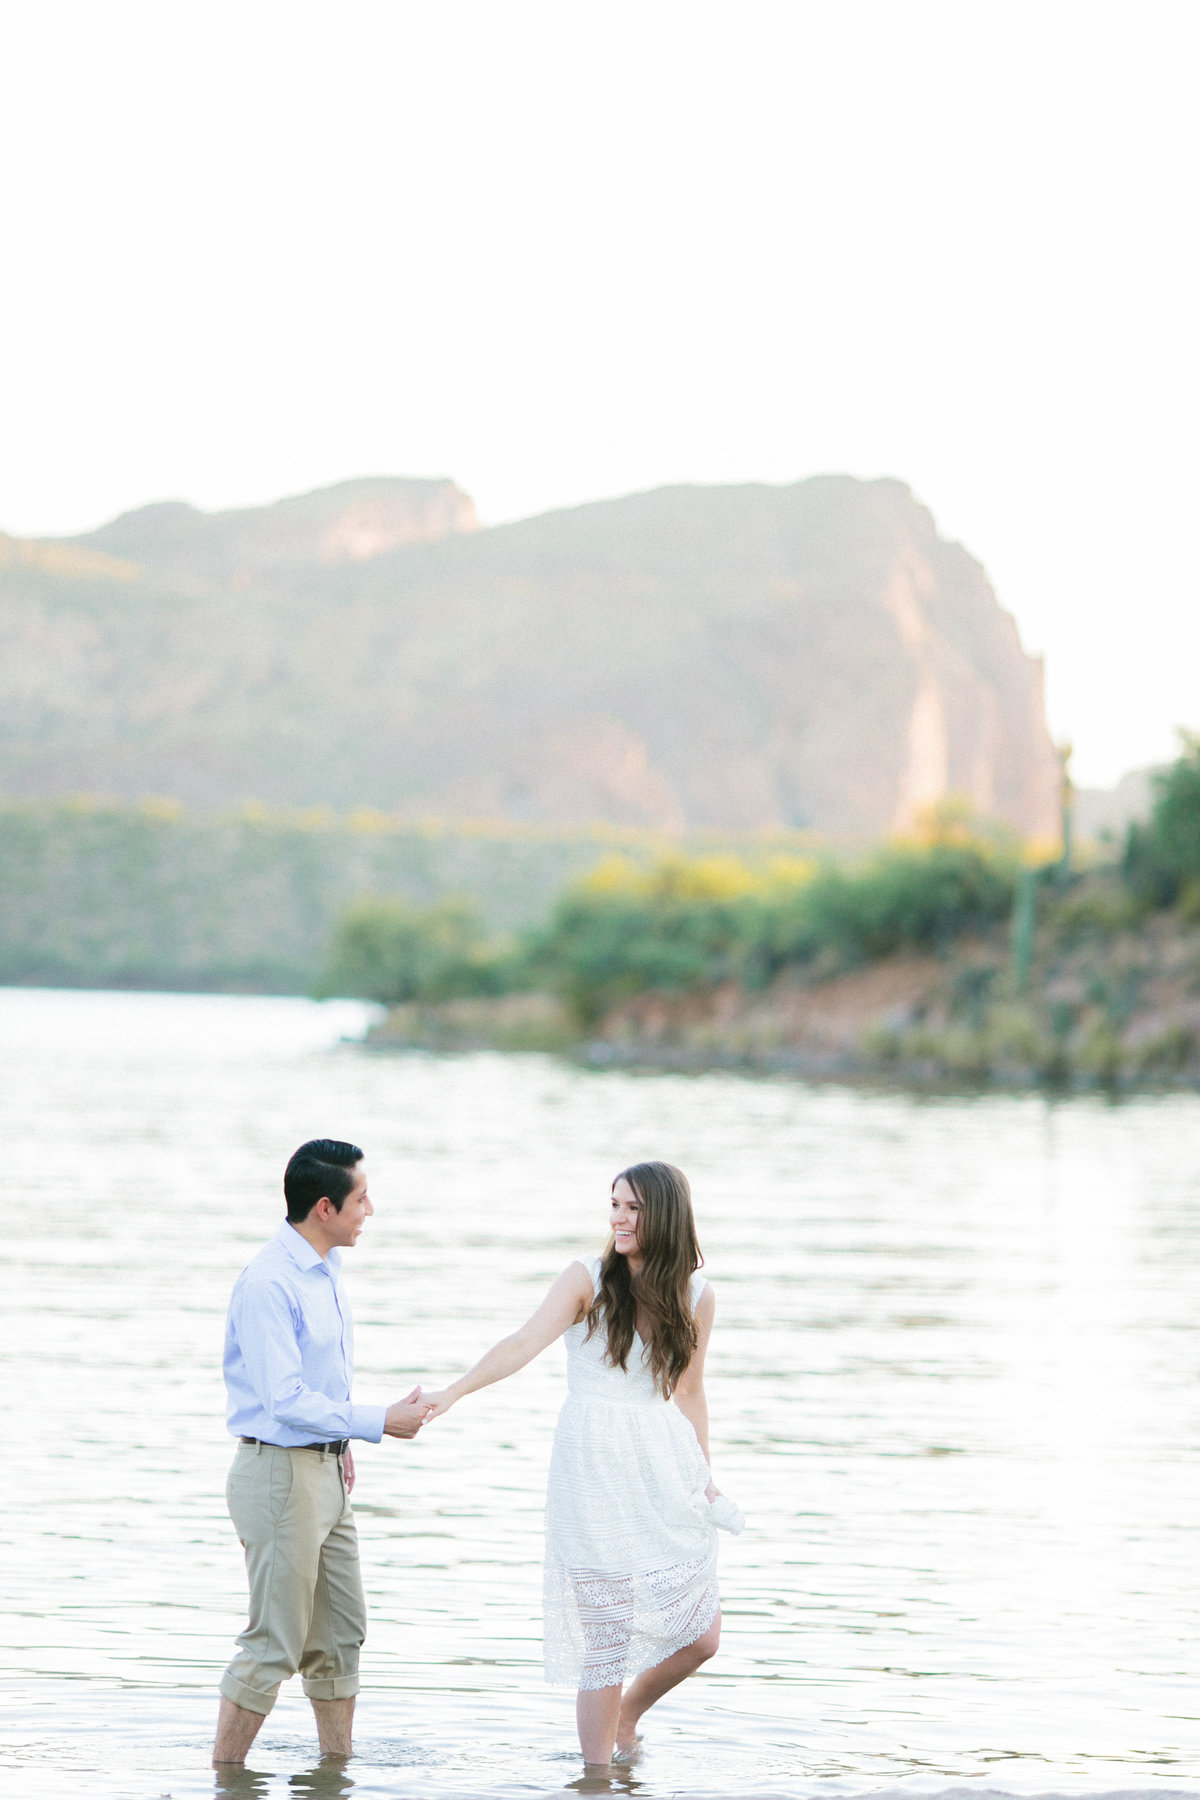 BarrientosEngagementWEBSITE-8